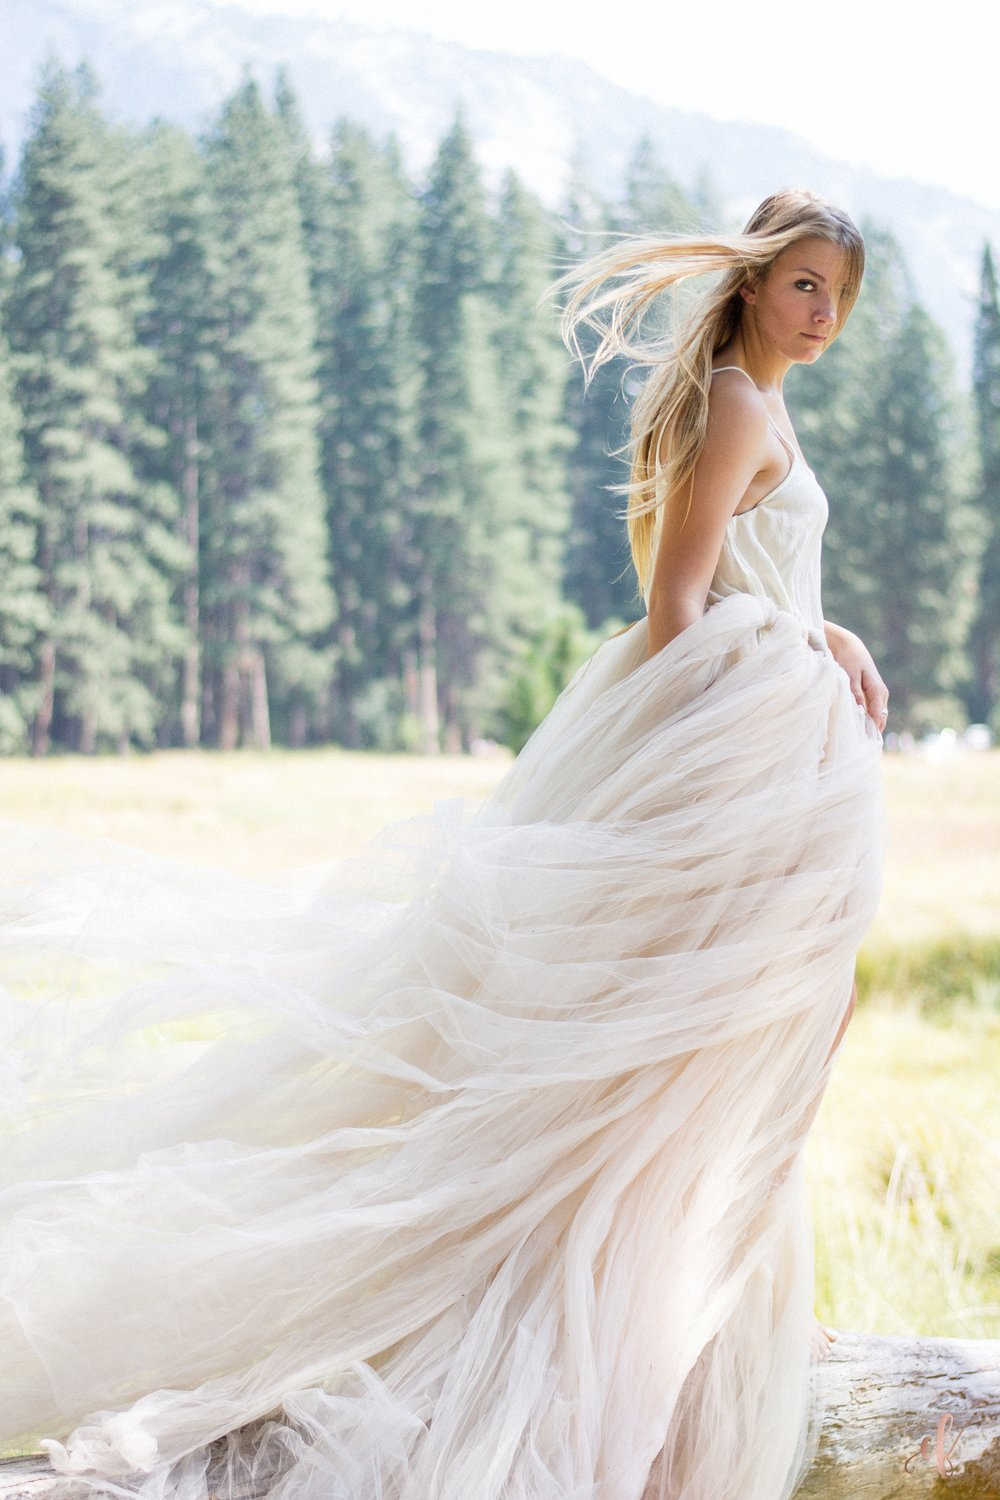 San Diego Portrait Photography | Yosemite | Senior Portraits | Tulle Skirts